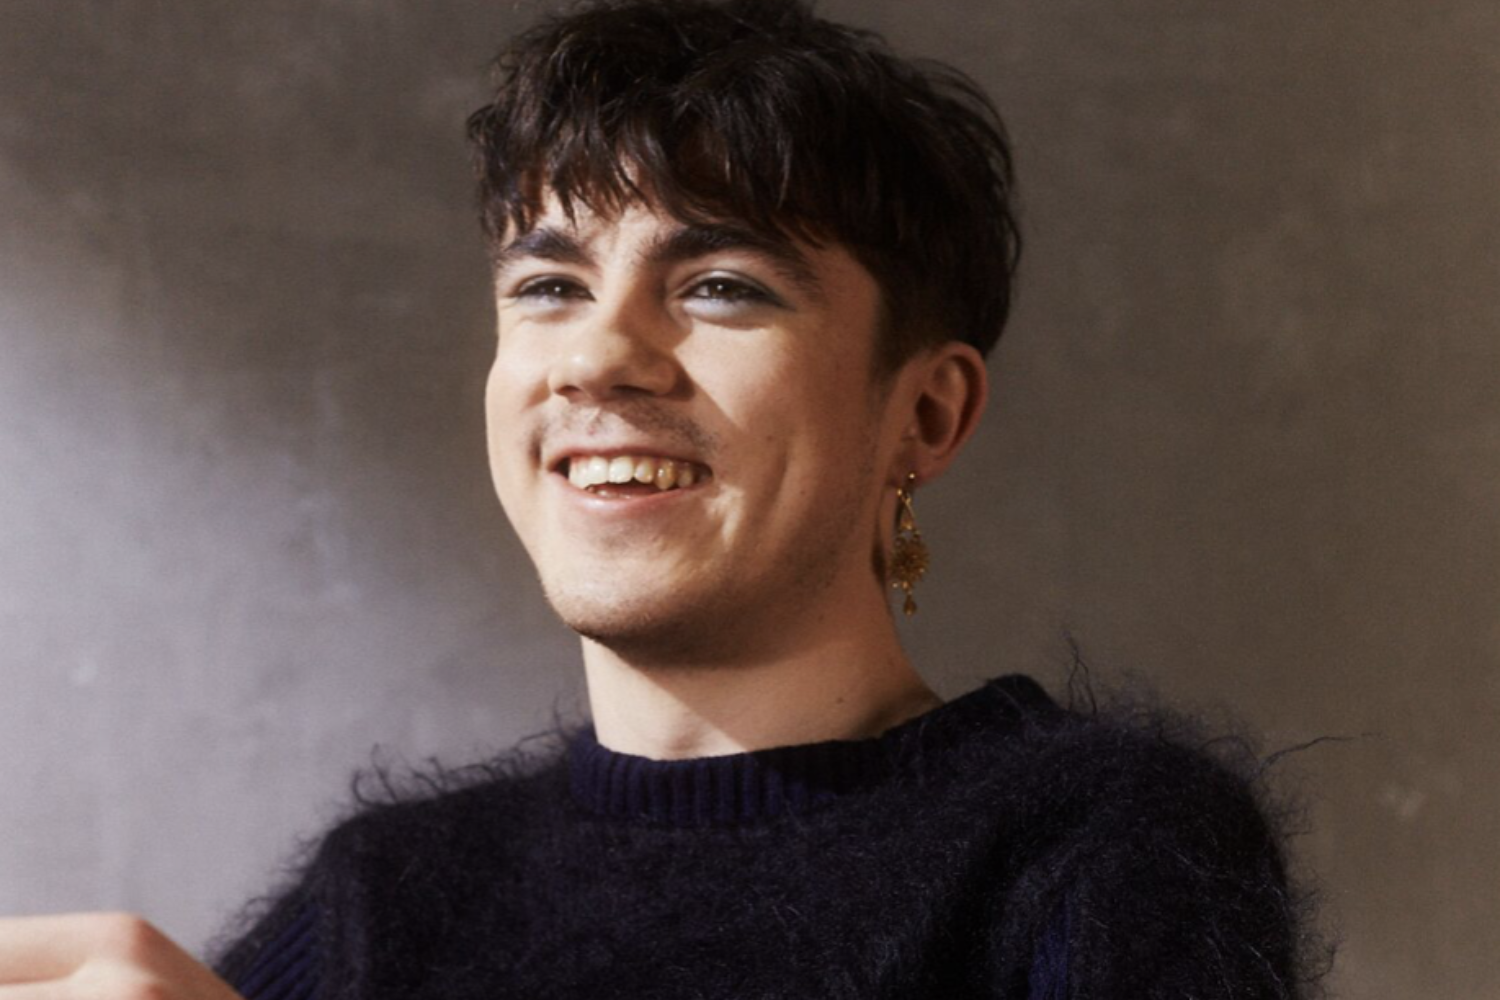 Declan McKenna announces new album 'Zeros'